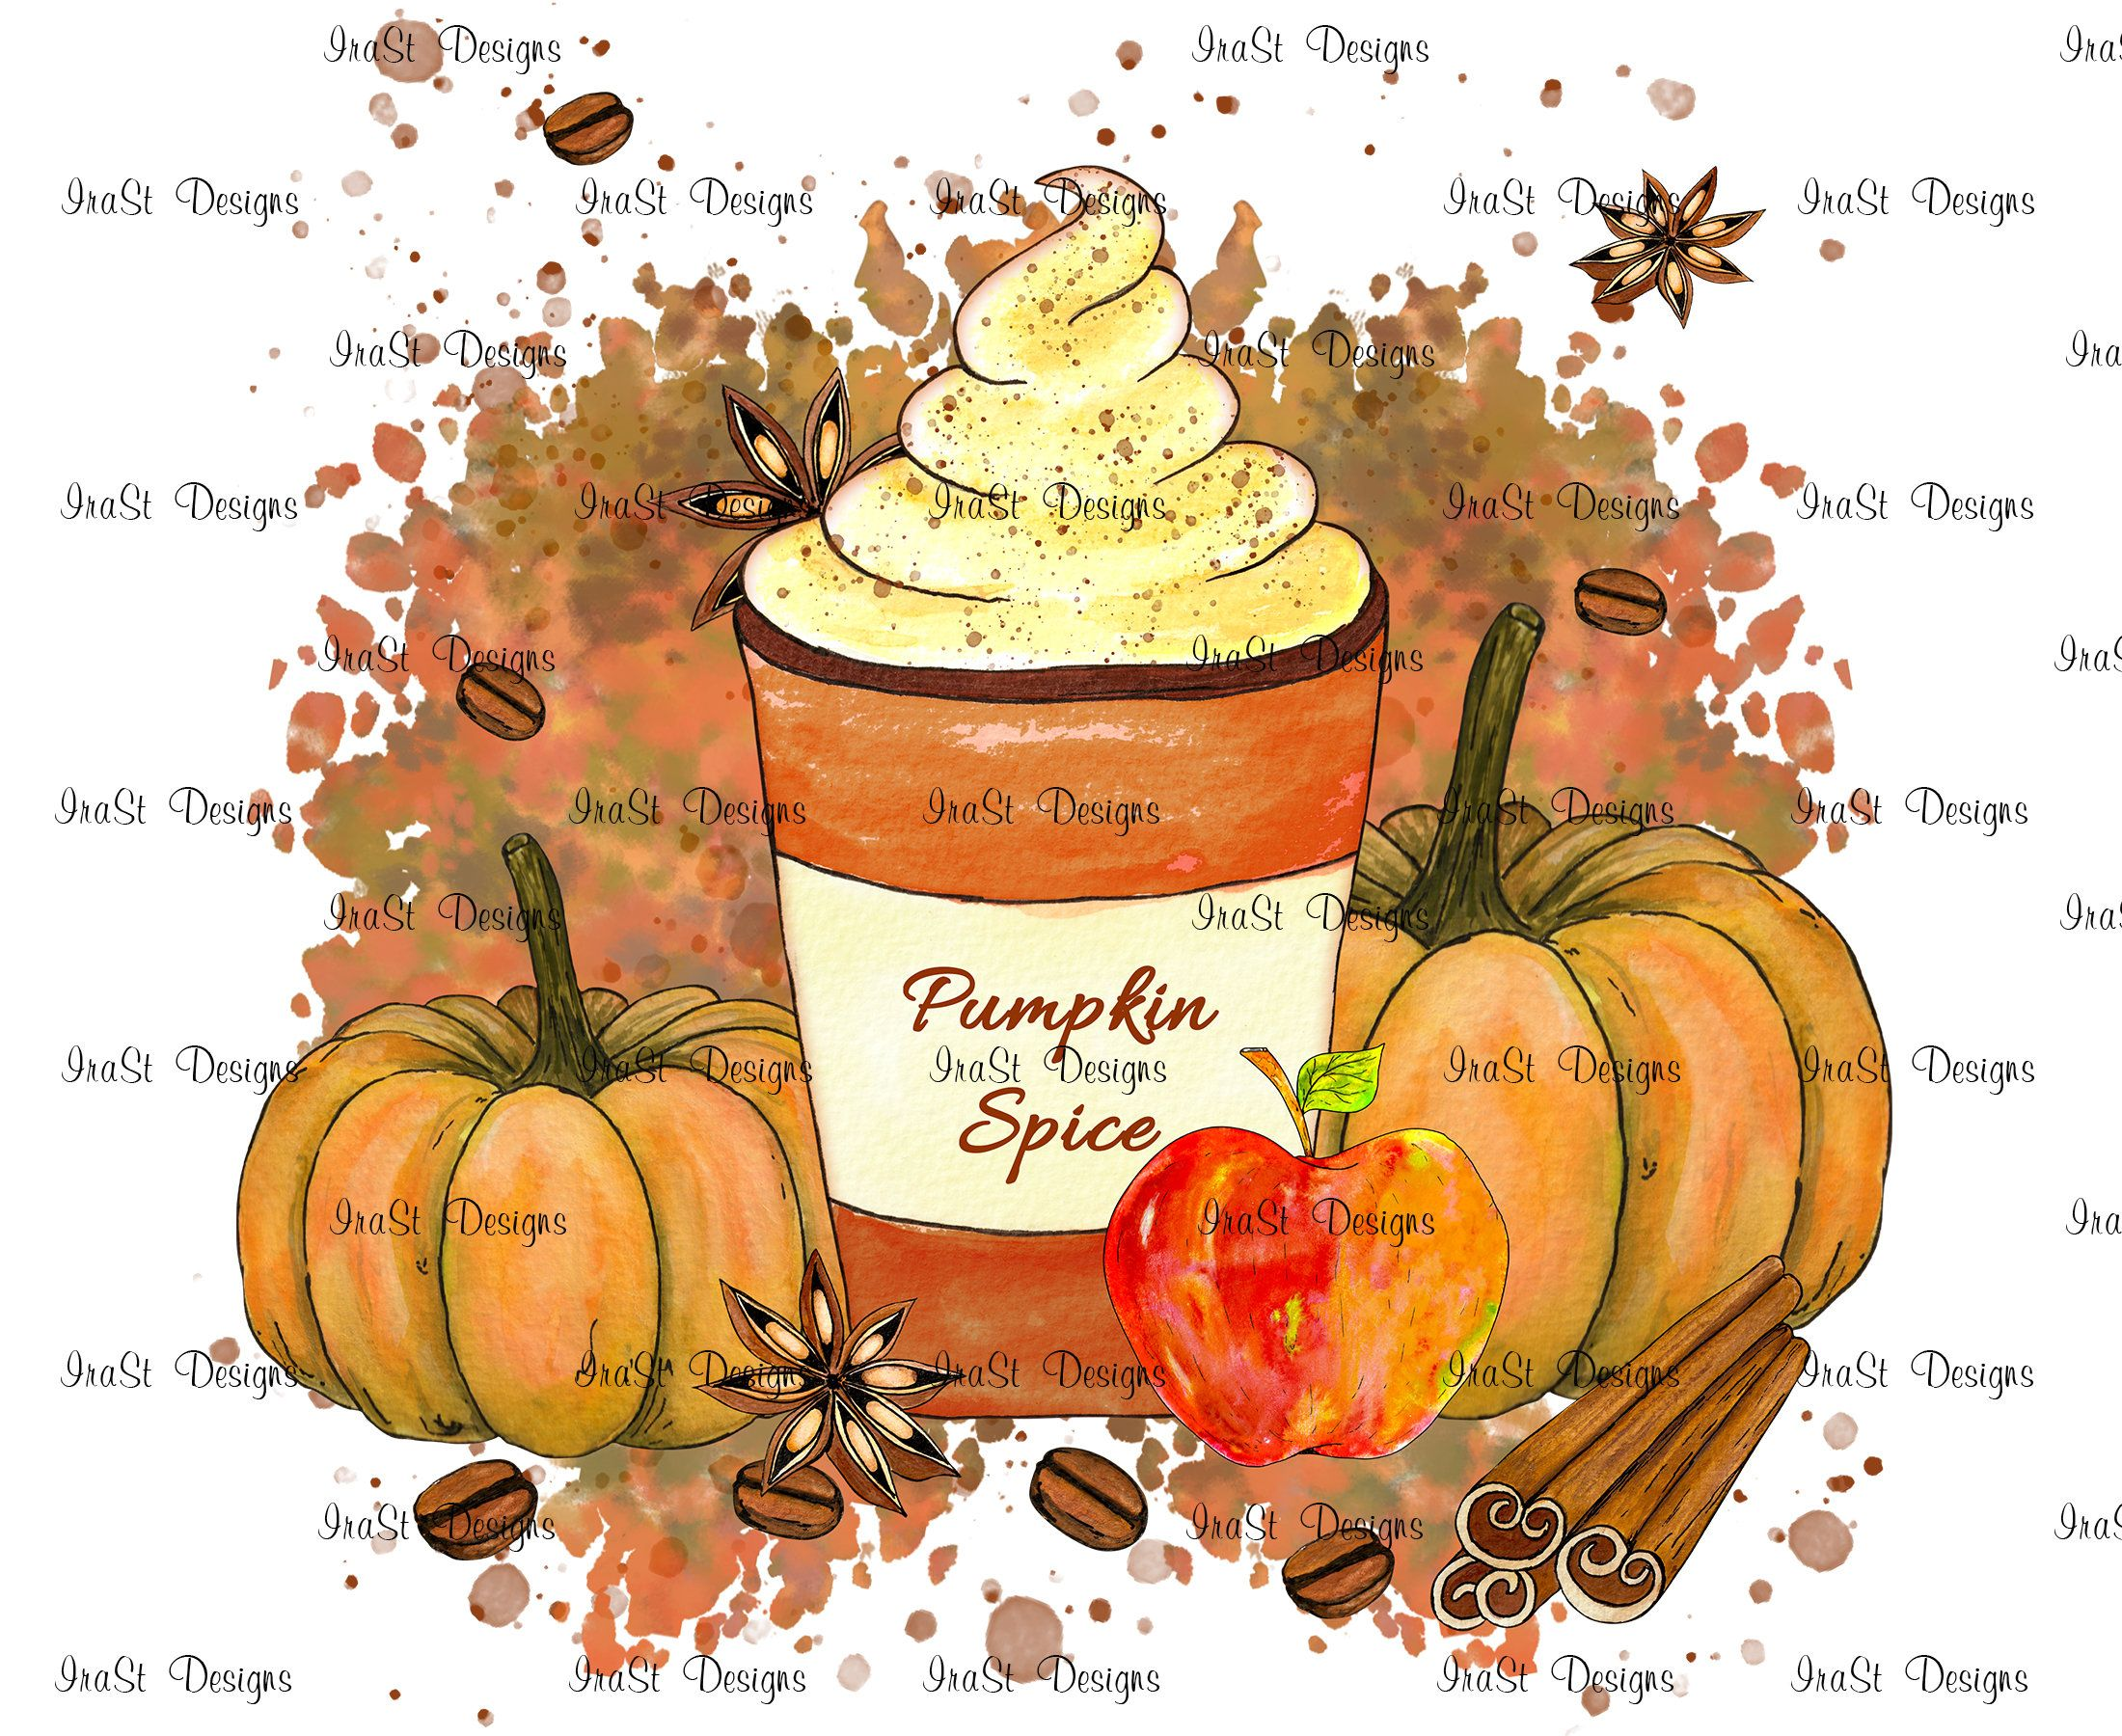 Pumpkin Spice Sublimation Png Hot Chocolate Pumkin Png Etsy In 2020 Pumpkin Spice Drinks Spiced Drinks Fall Wall Art